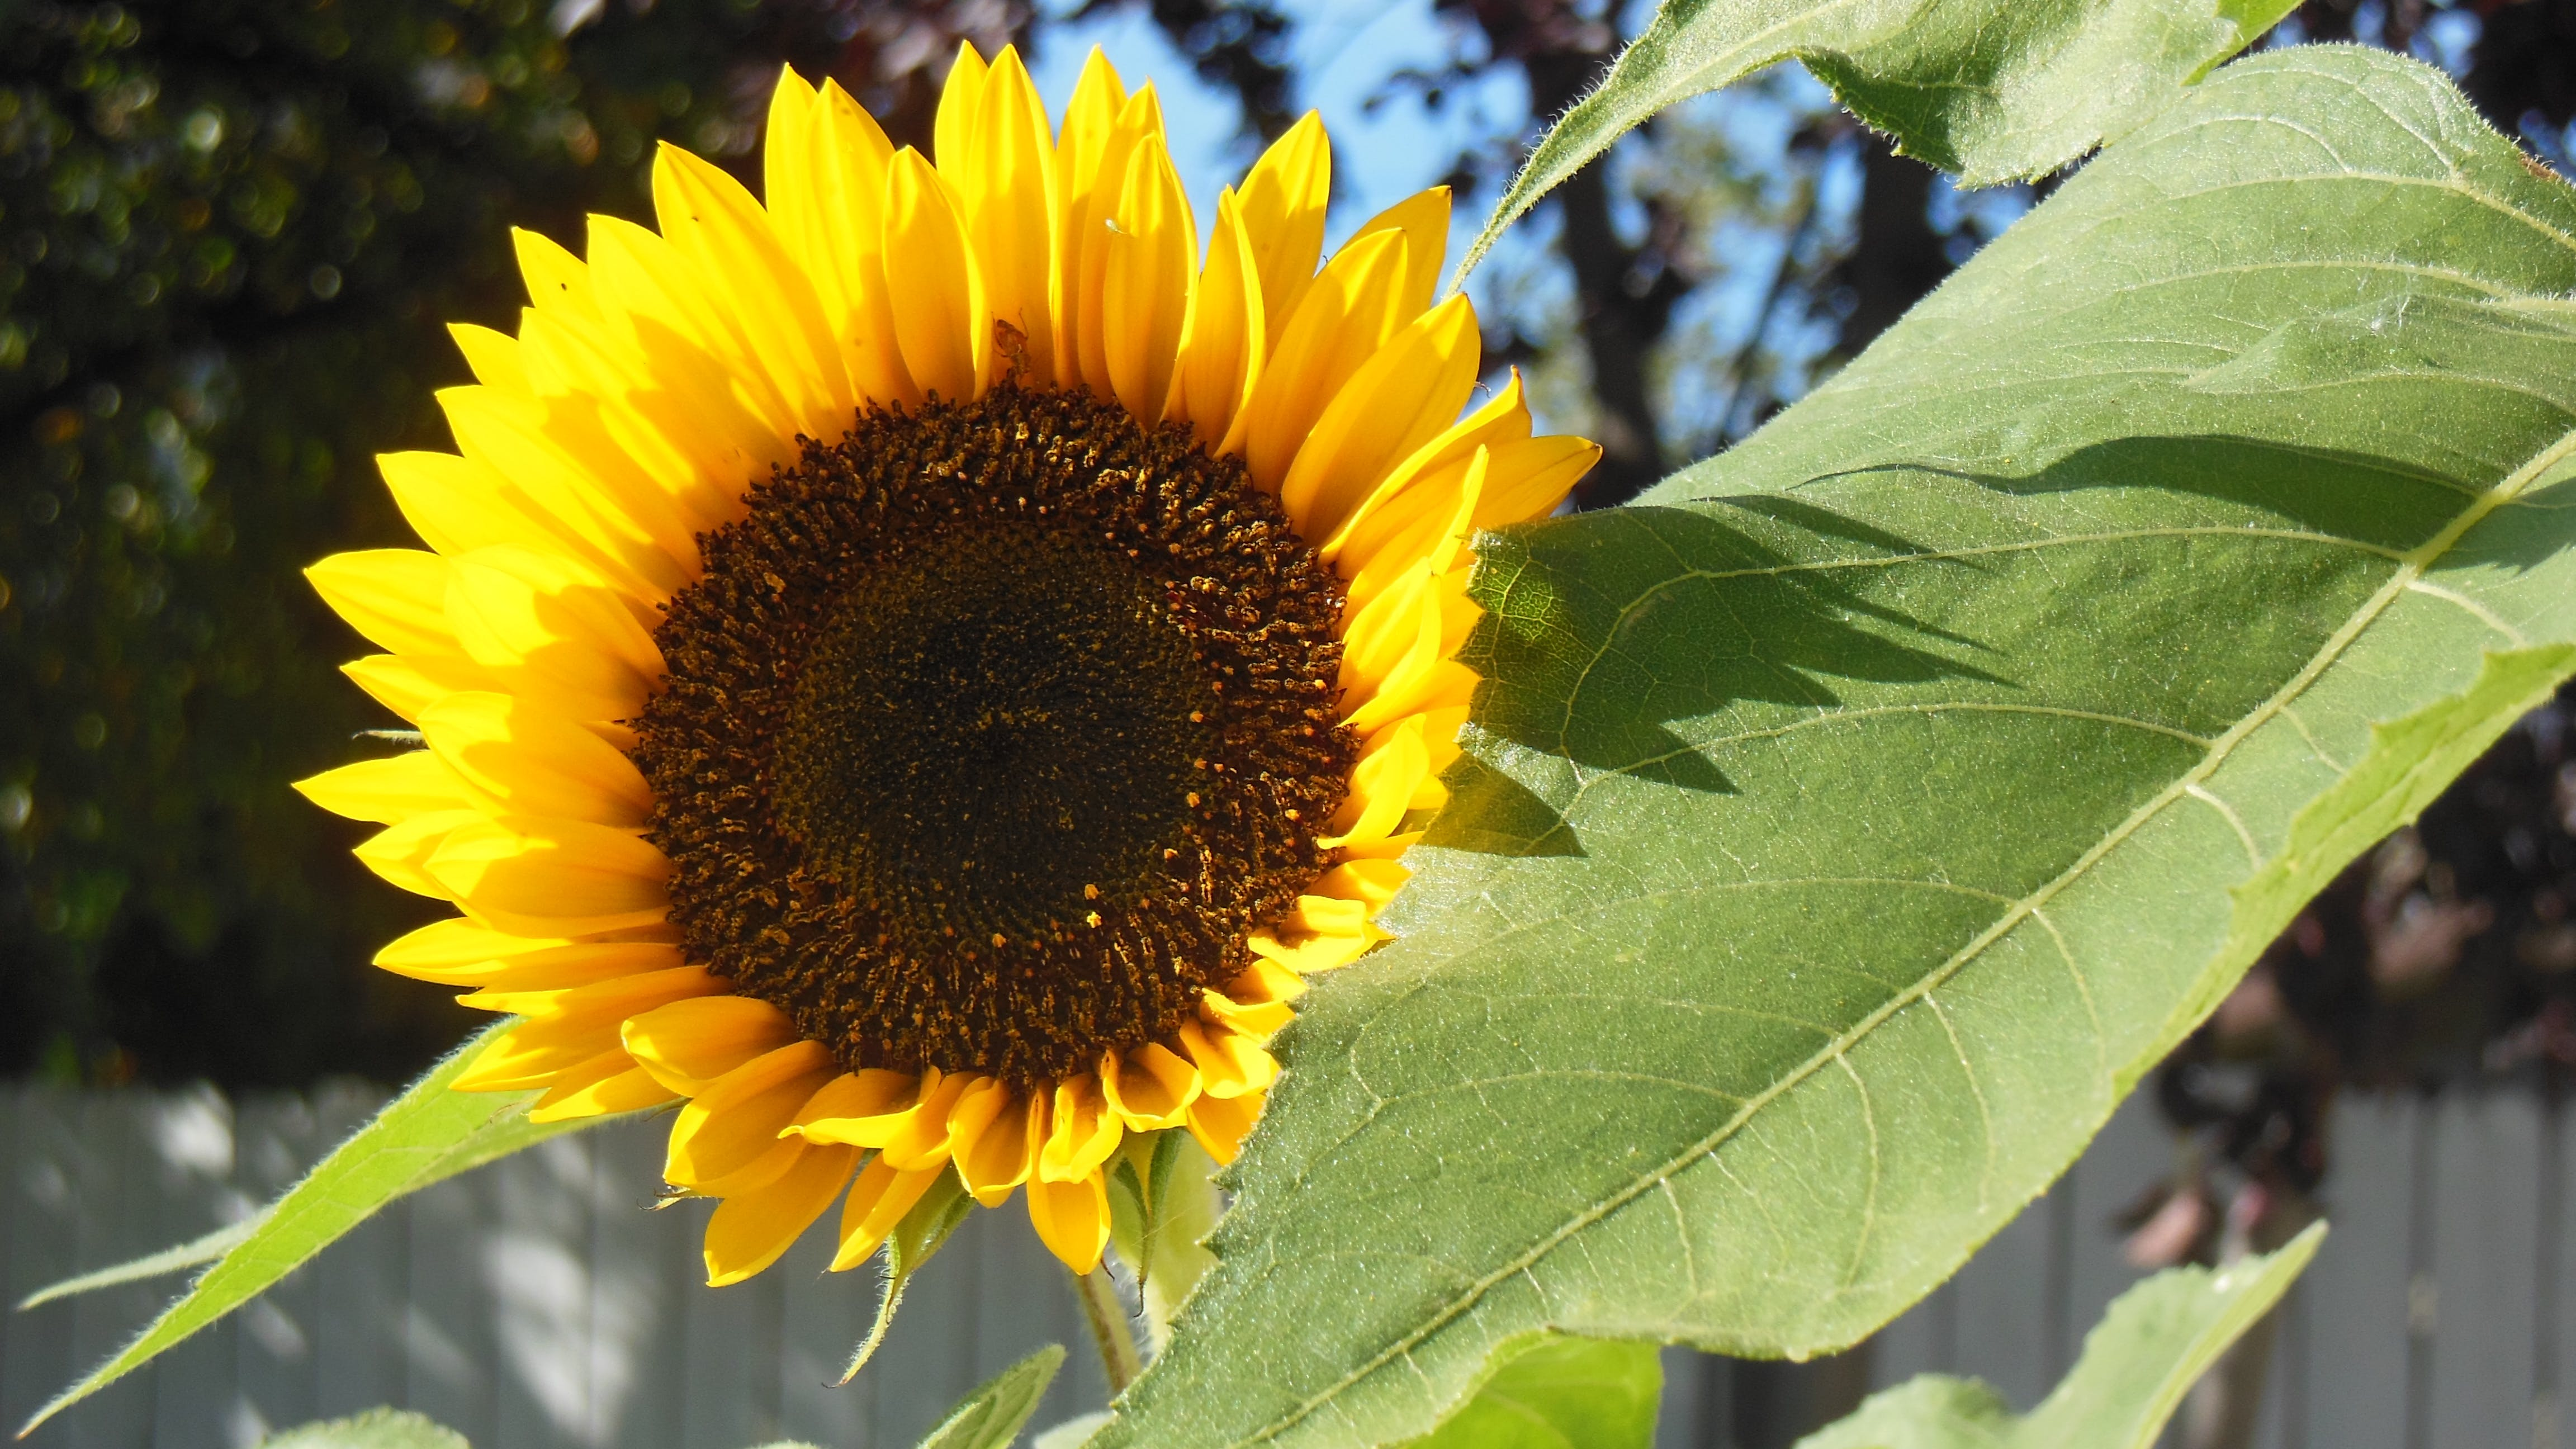 Free stock photo of curious sunflower